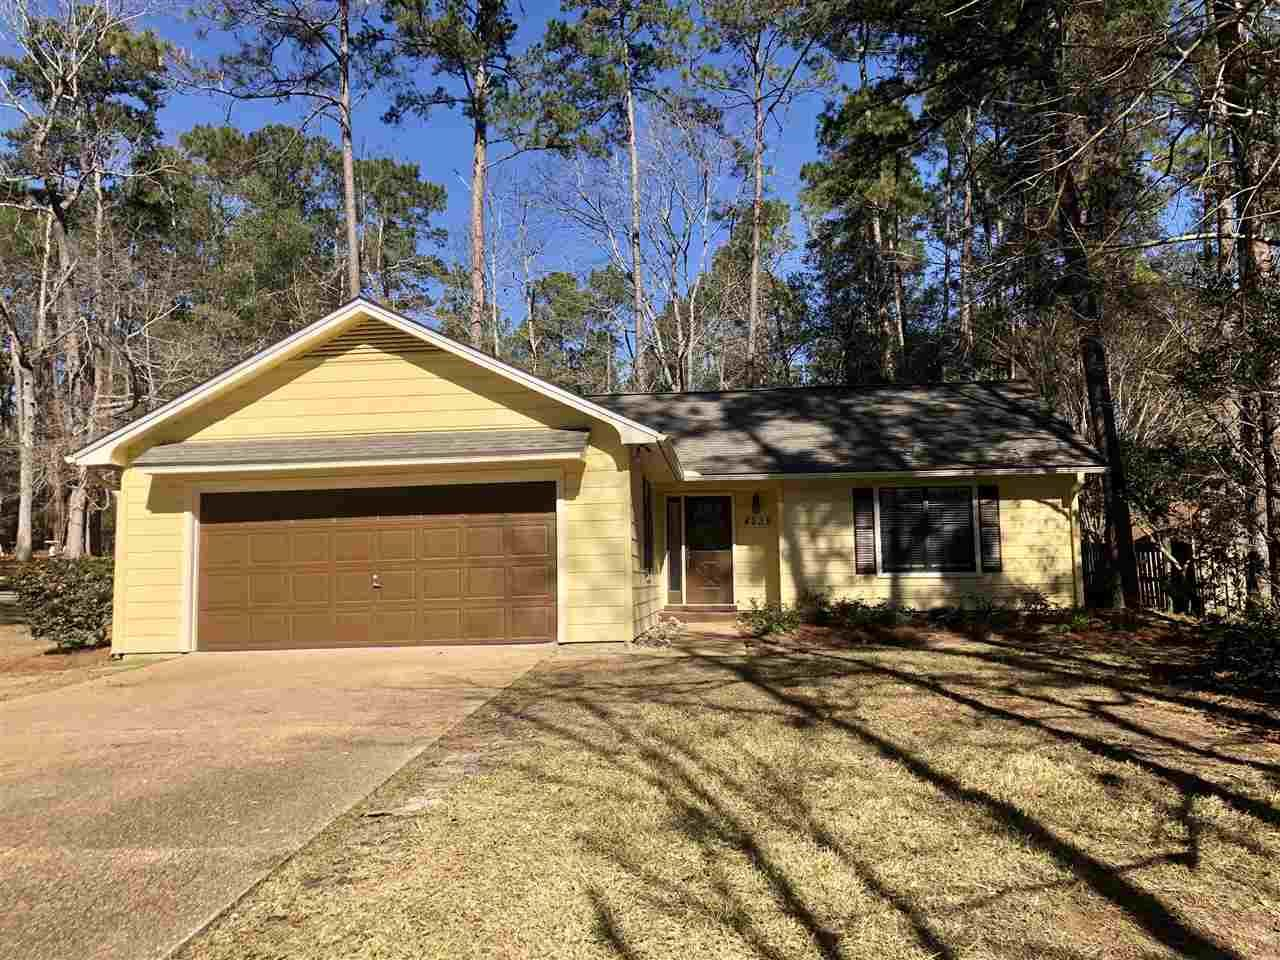 8239 Hunters Ridge Trail, Tallahassee, FL 32312 - MLS#: 328200